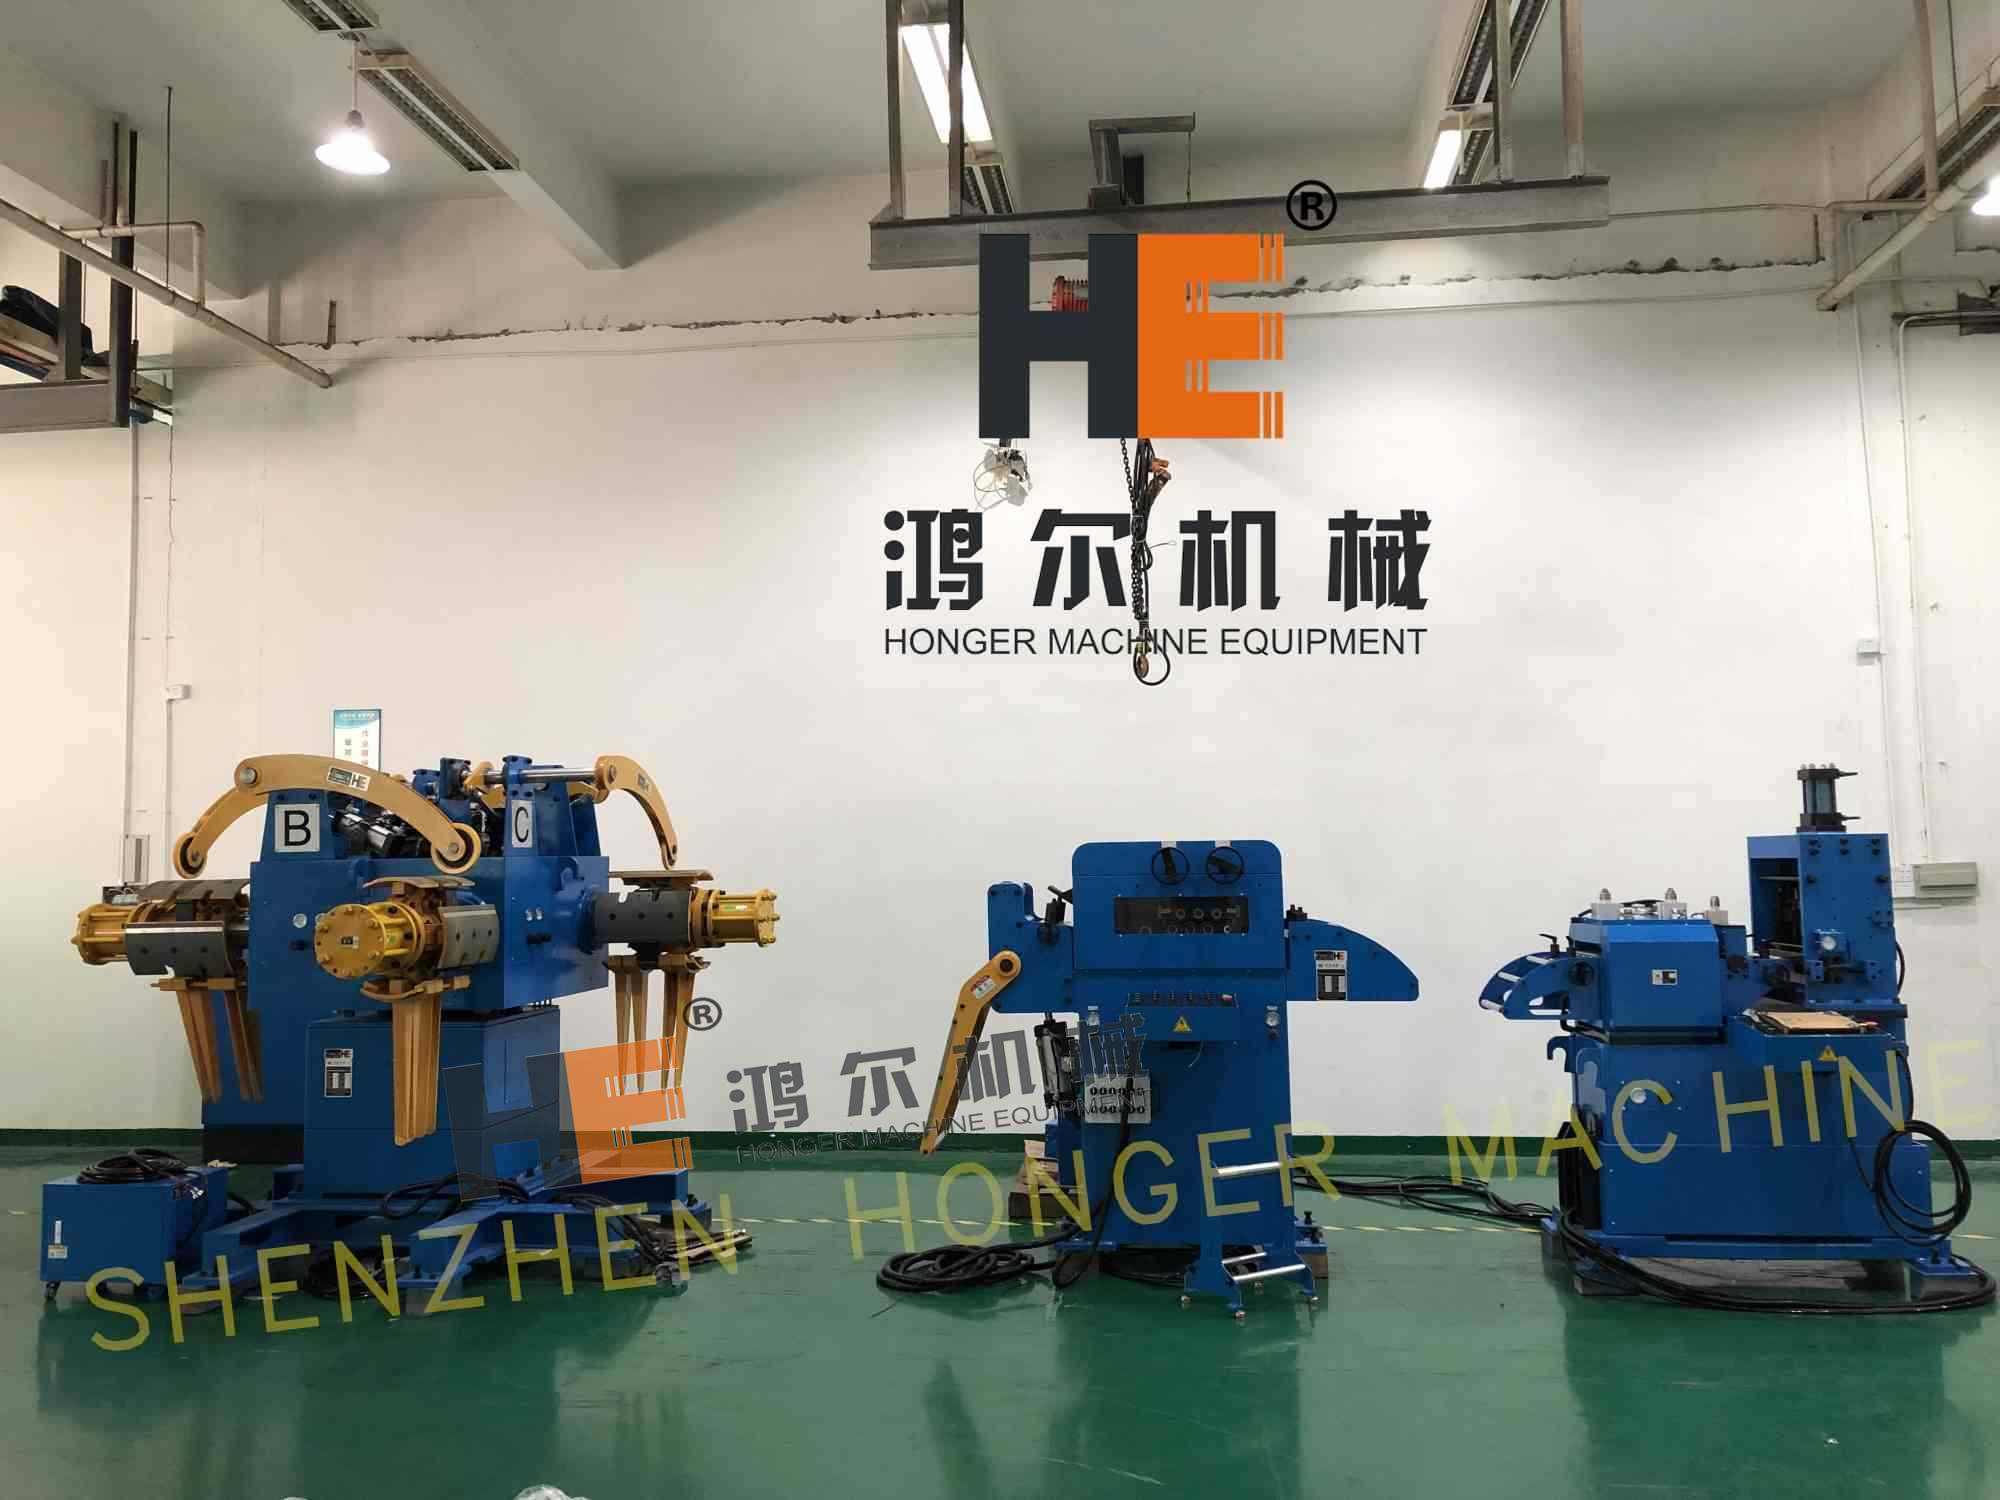 3 in 1 coil feeder machine for automatic stamping line